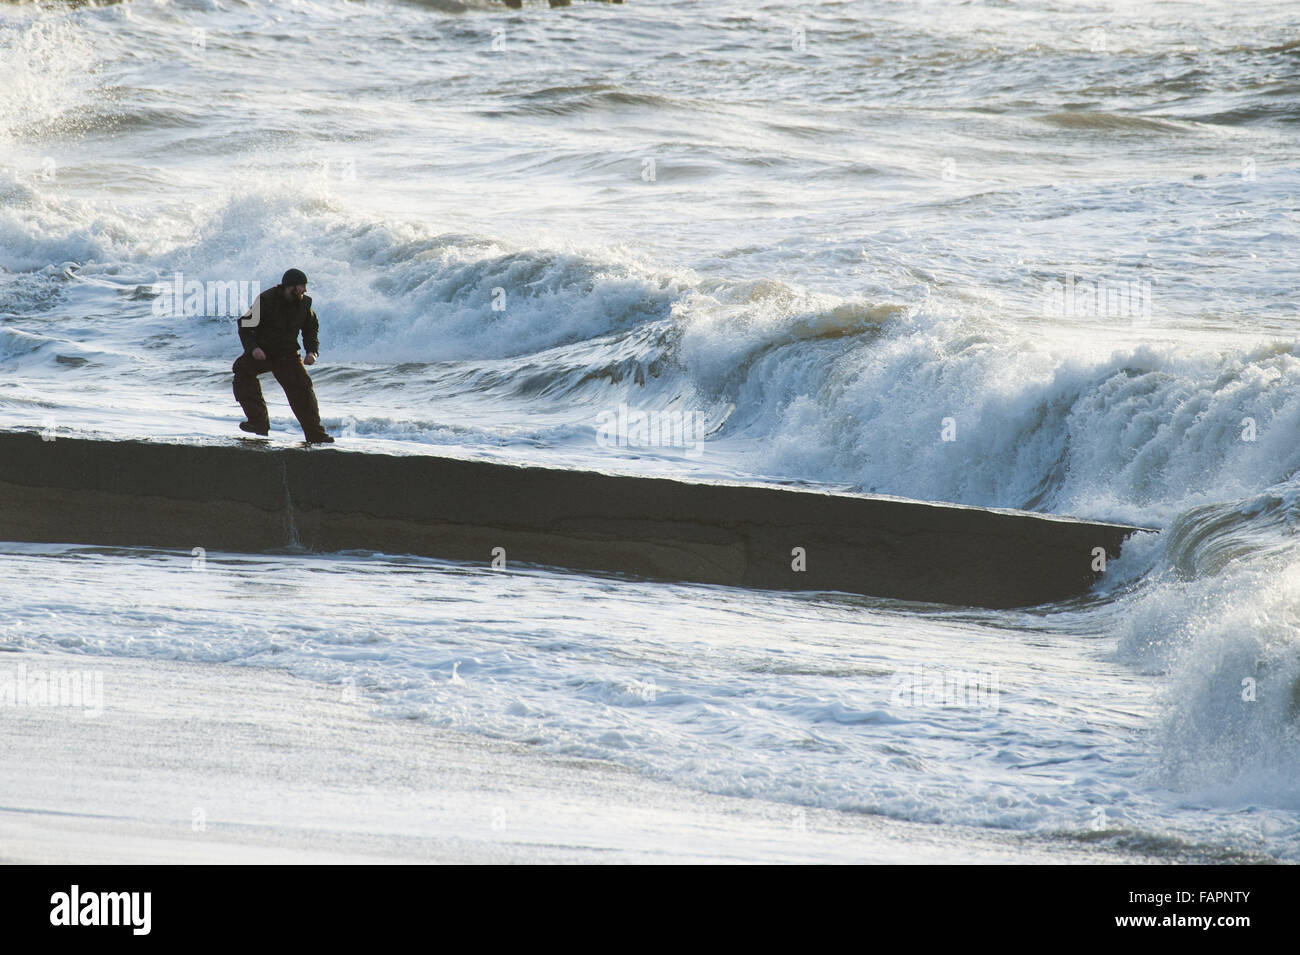 Aberystwyth Wales UK Sunday 03 January 2016 A man plays 'dodge the waves' , running along a breakwater or - Stock Image